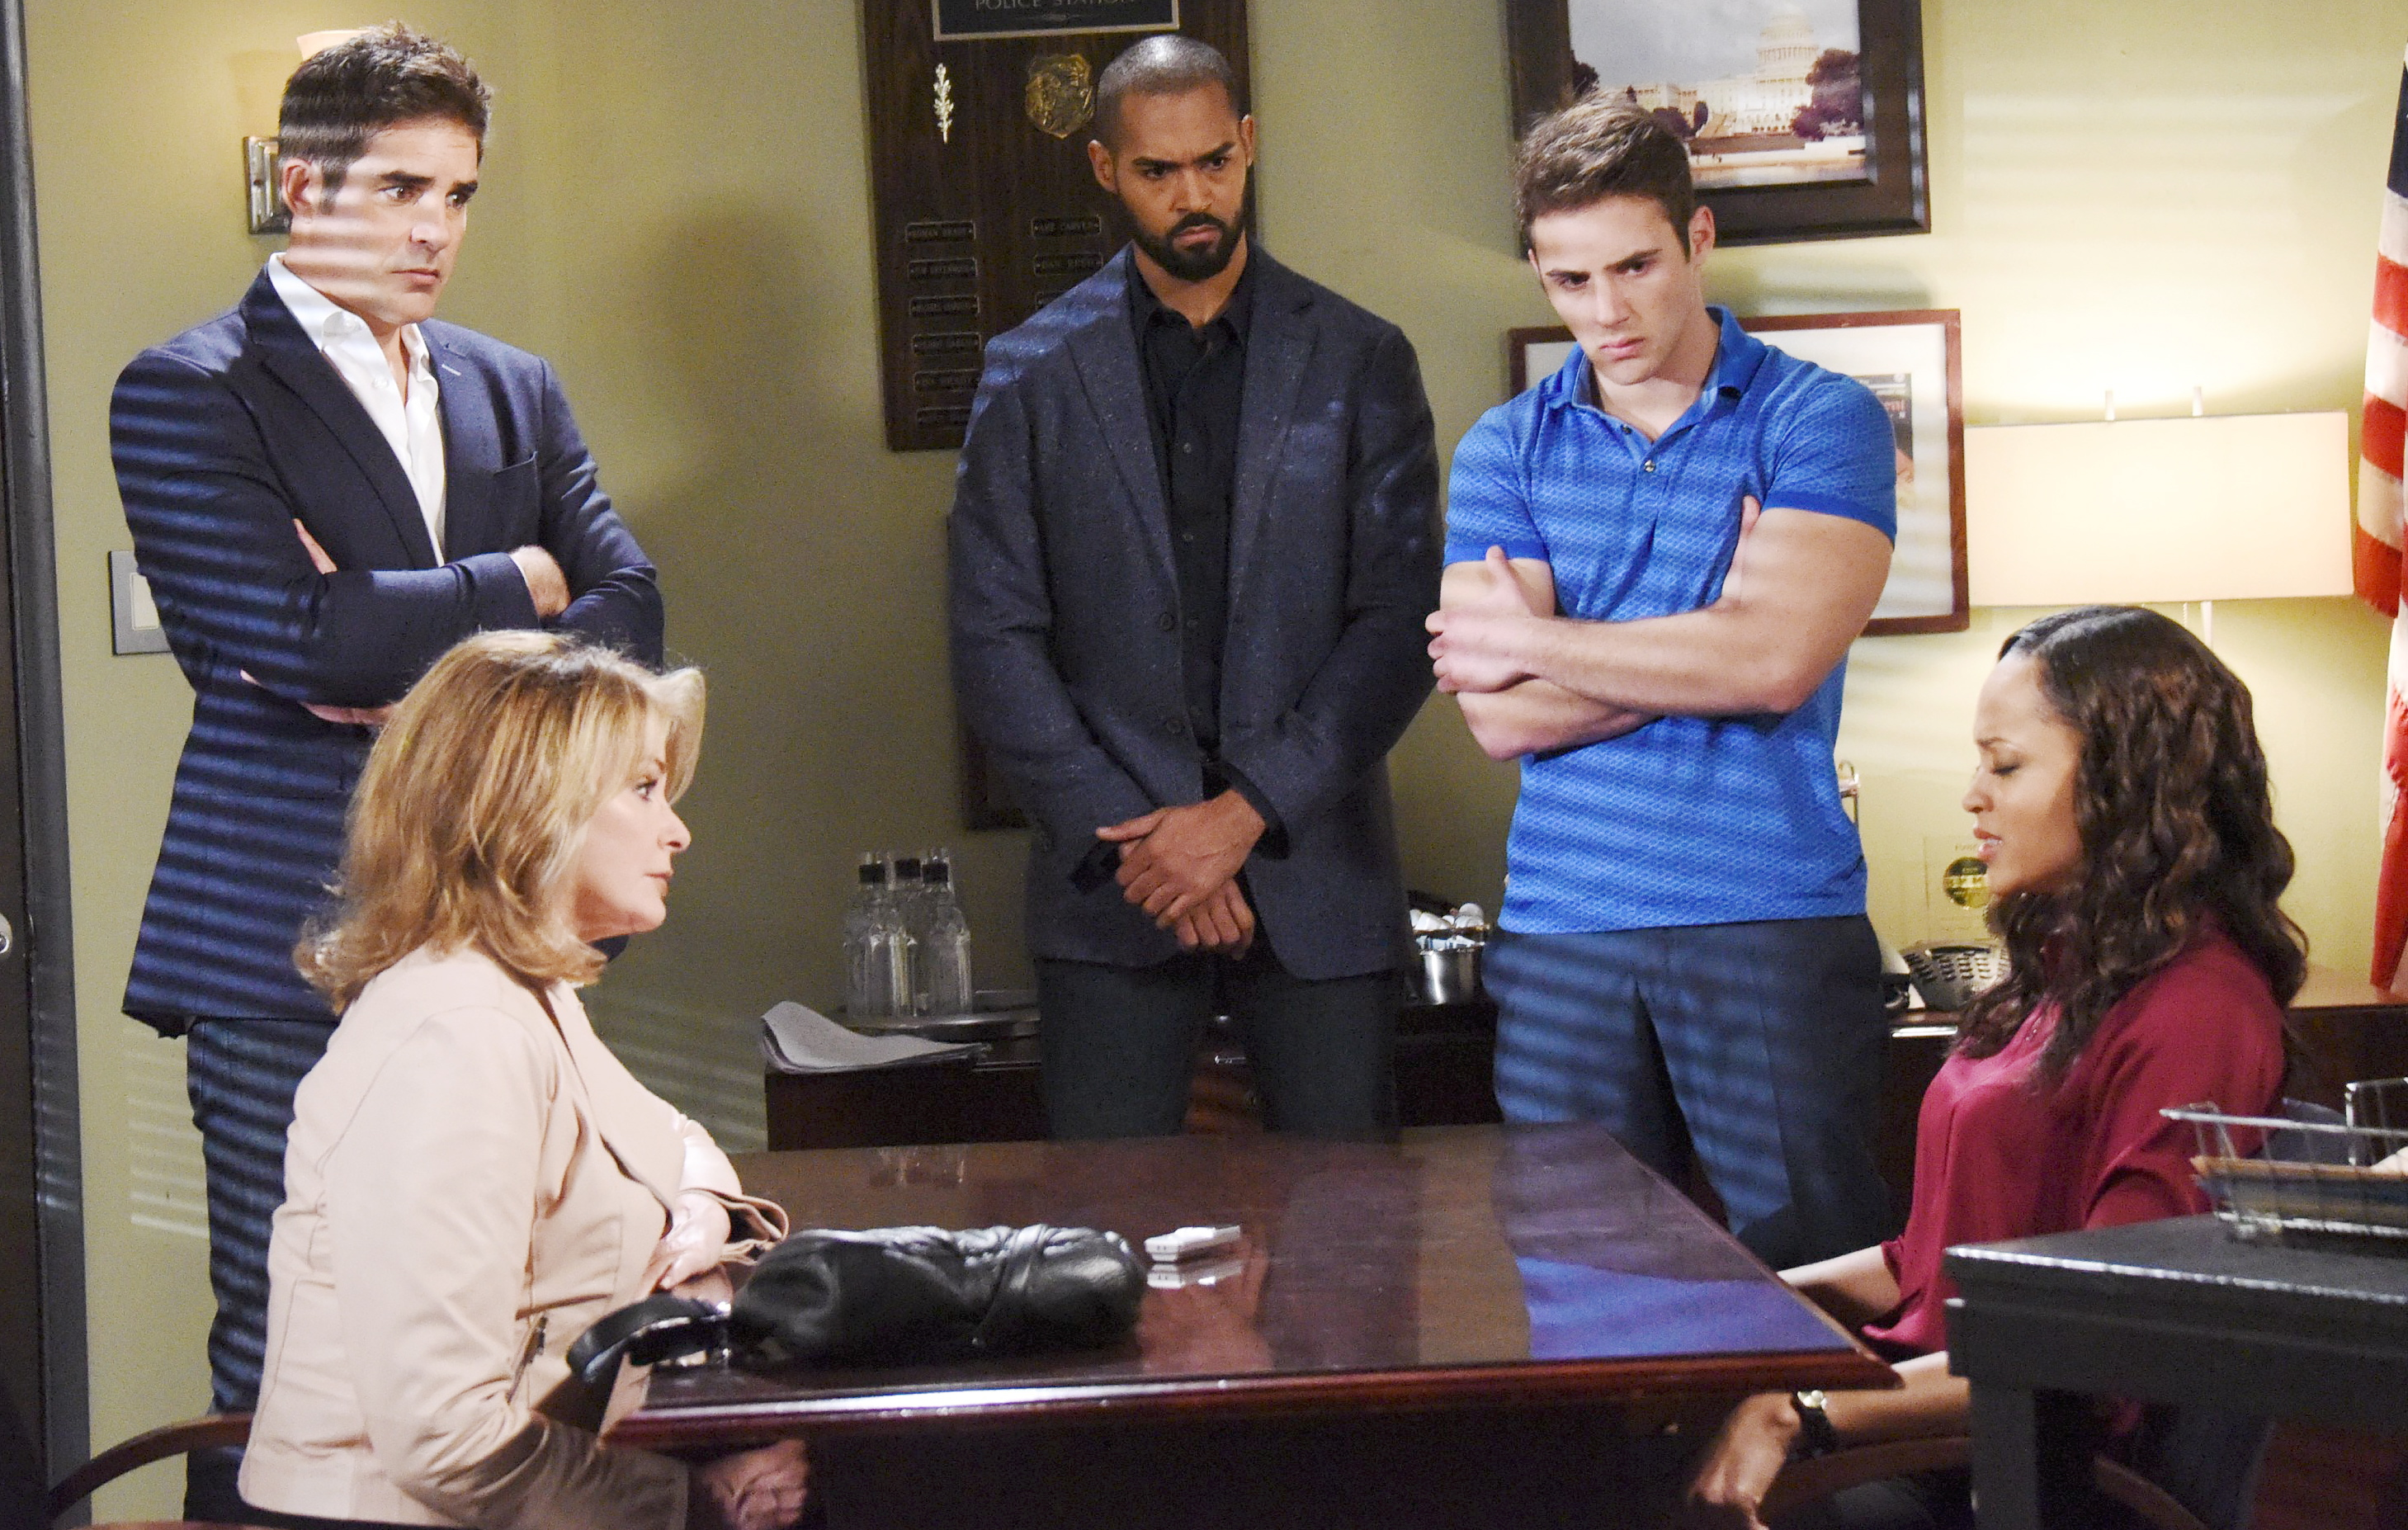 DAYS OF OUR LIVES EPISODE 13123